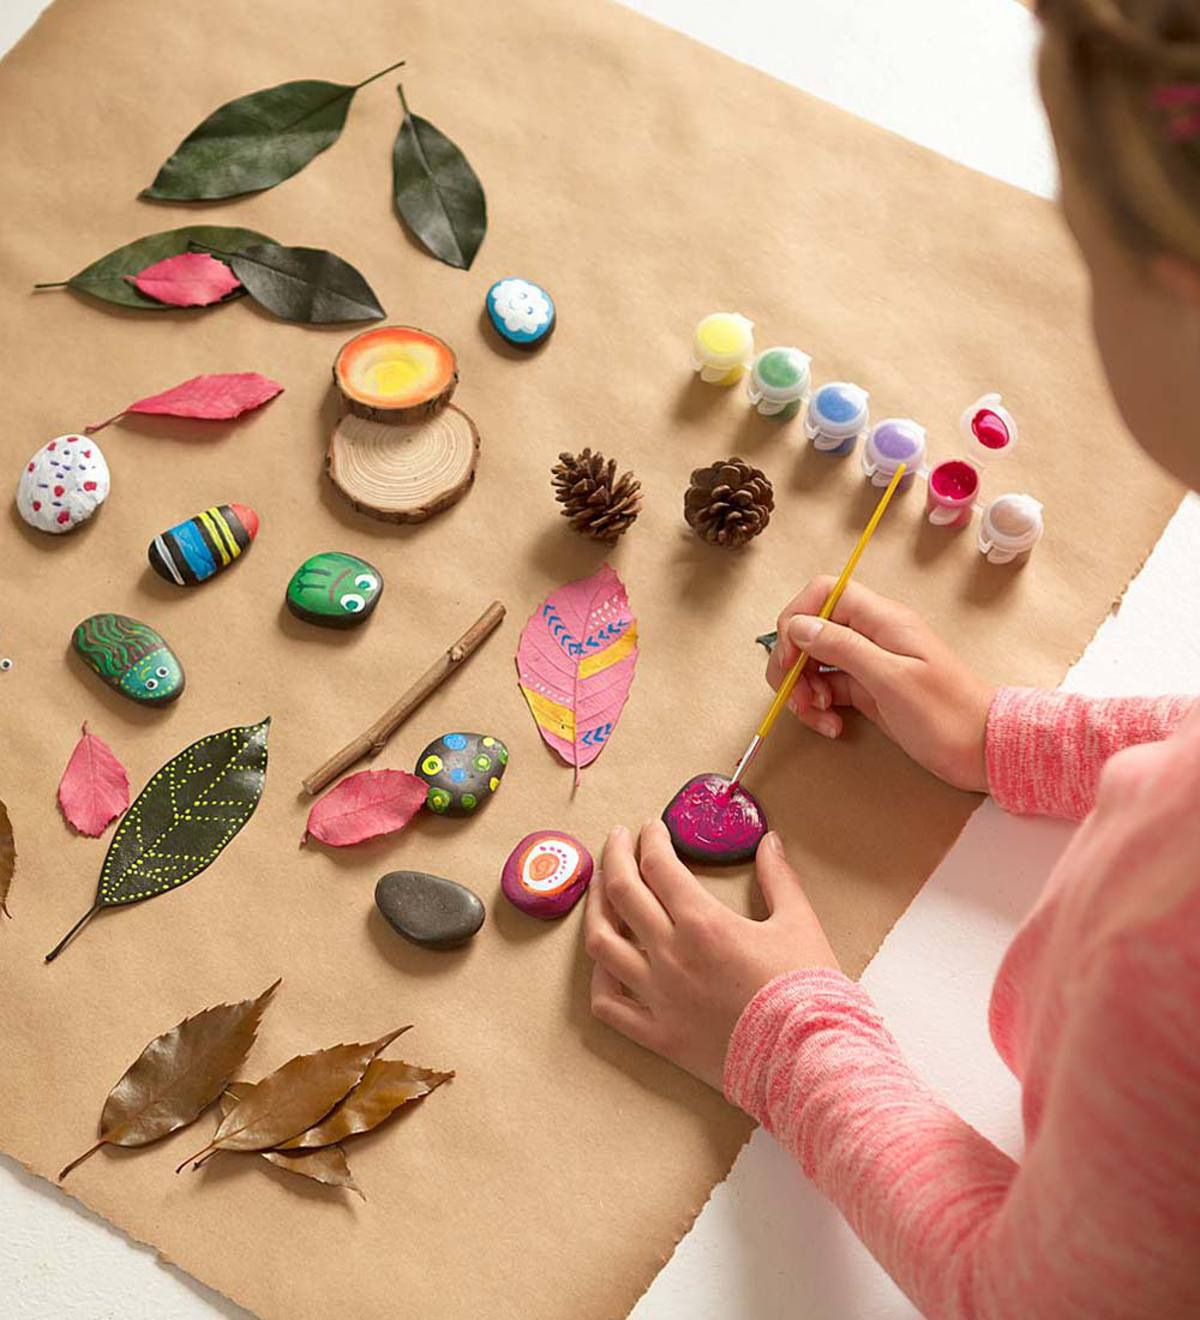 Crafty Creations Rock and Leaf Painting Kit